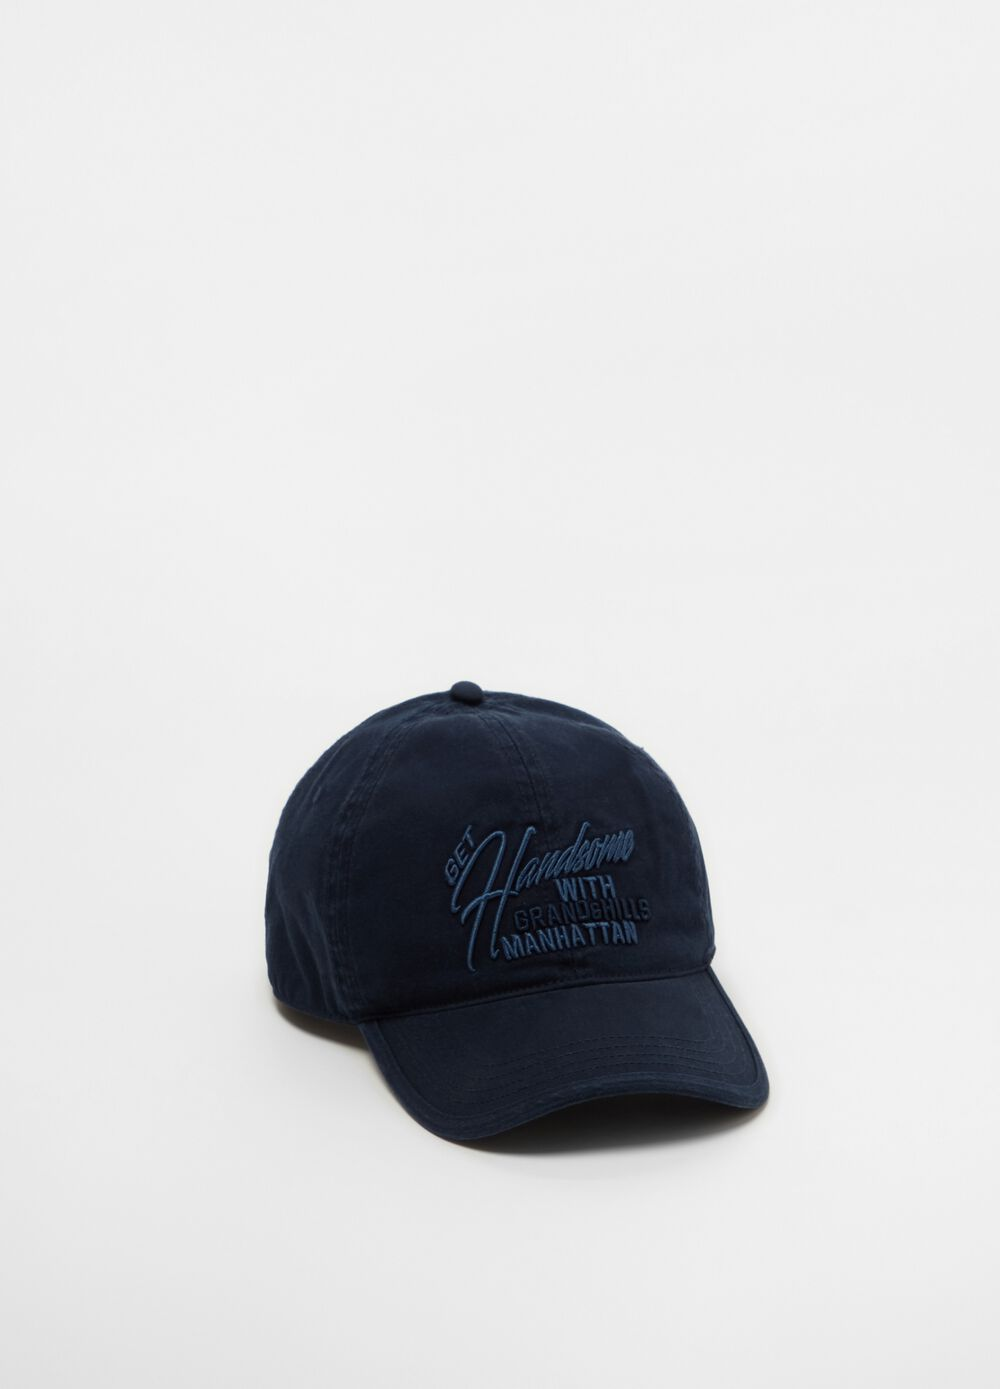 Baseball cap with embroidery